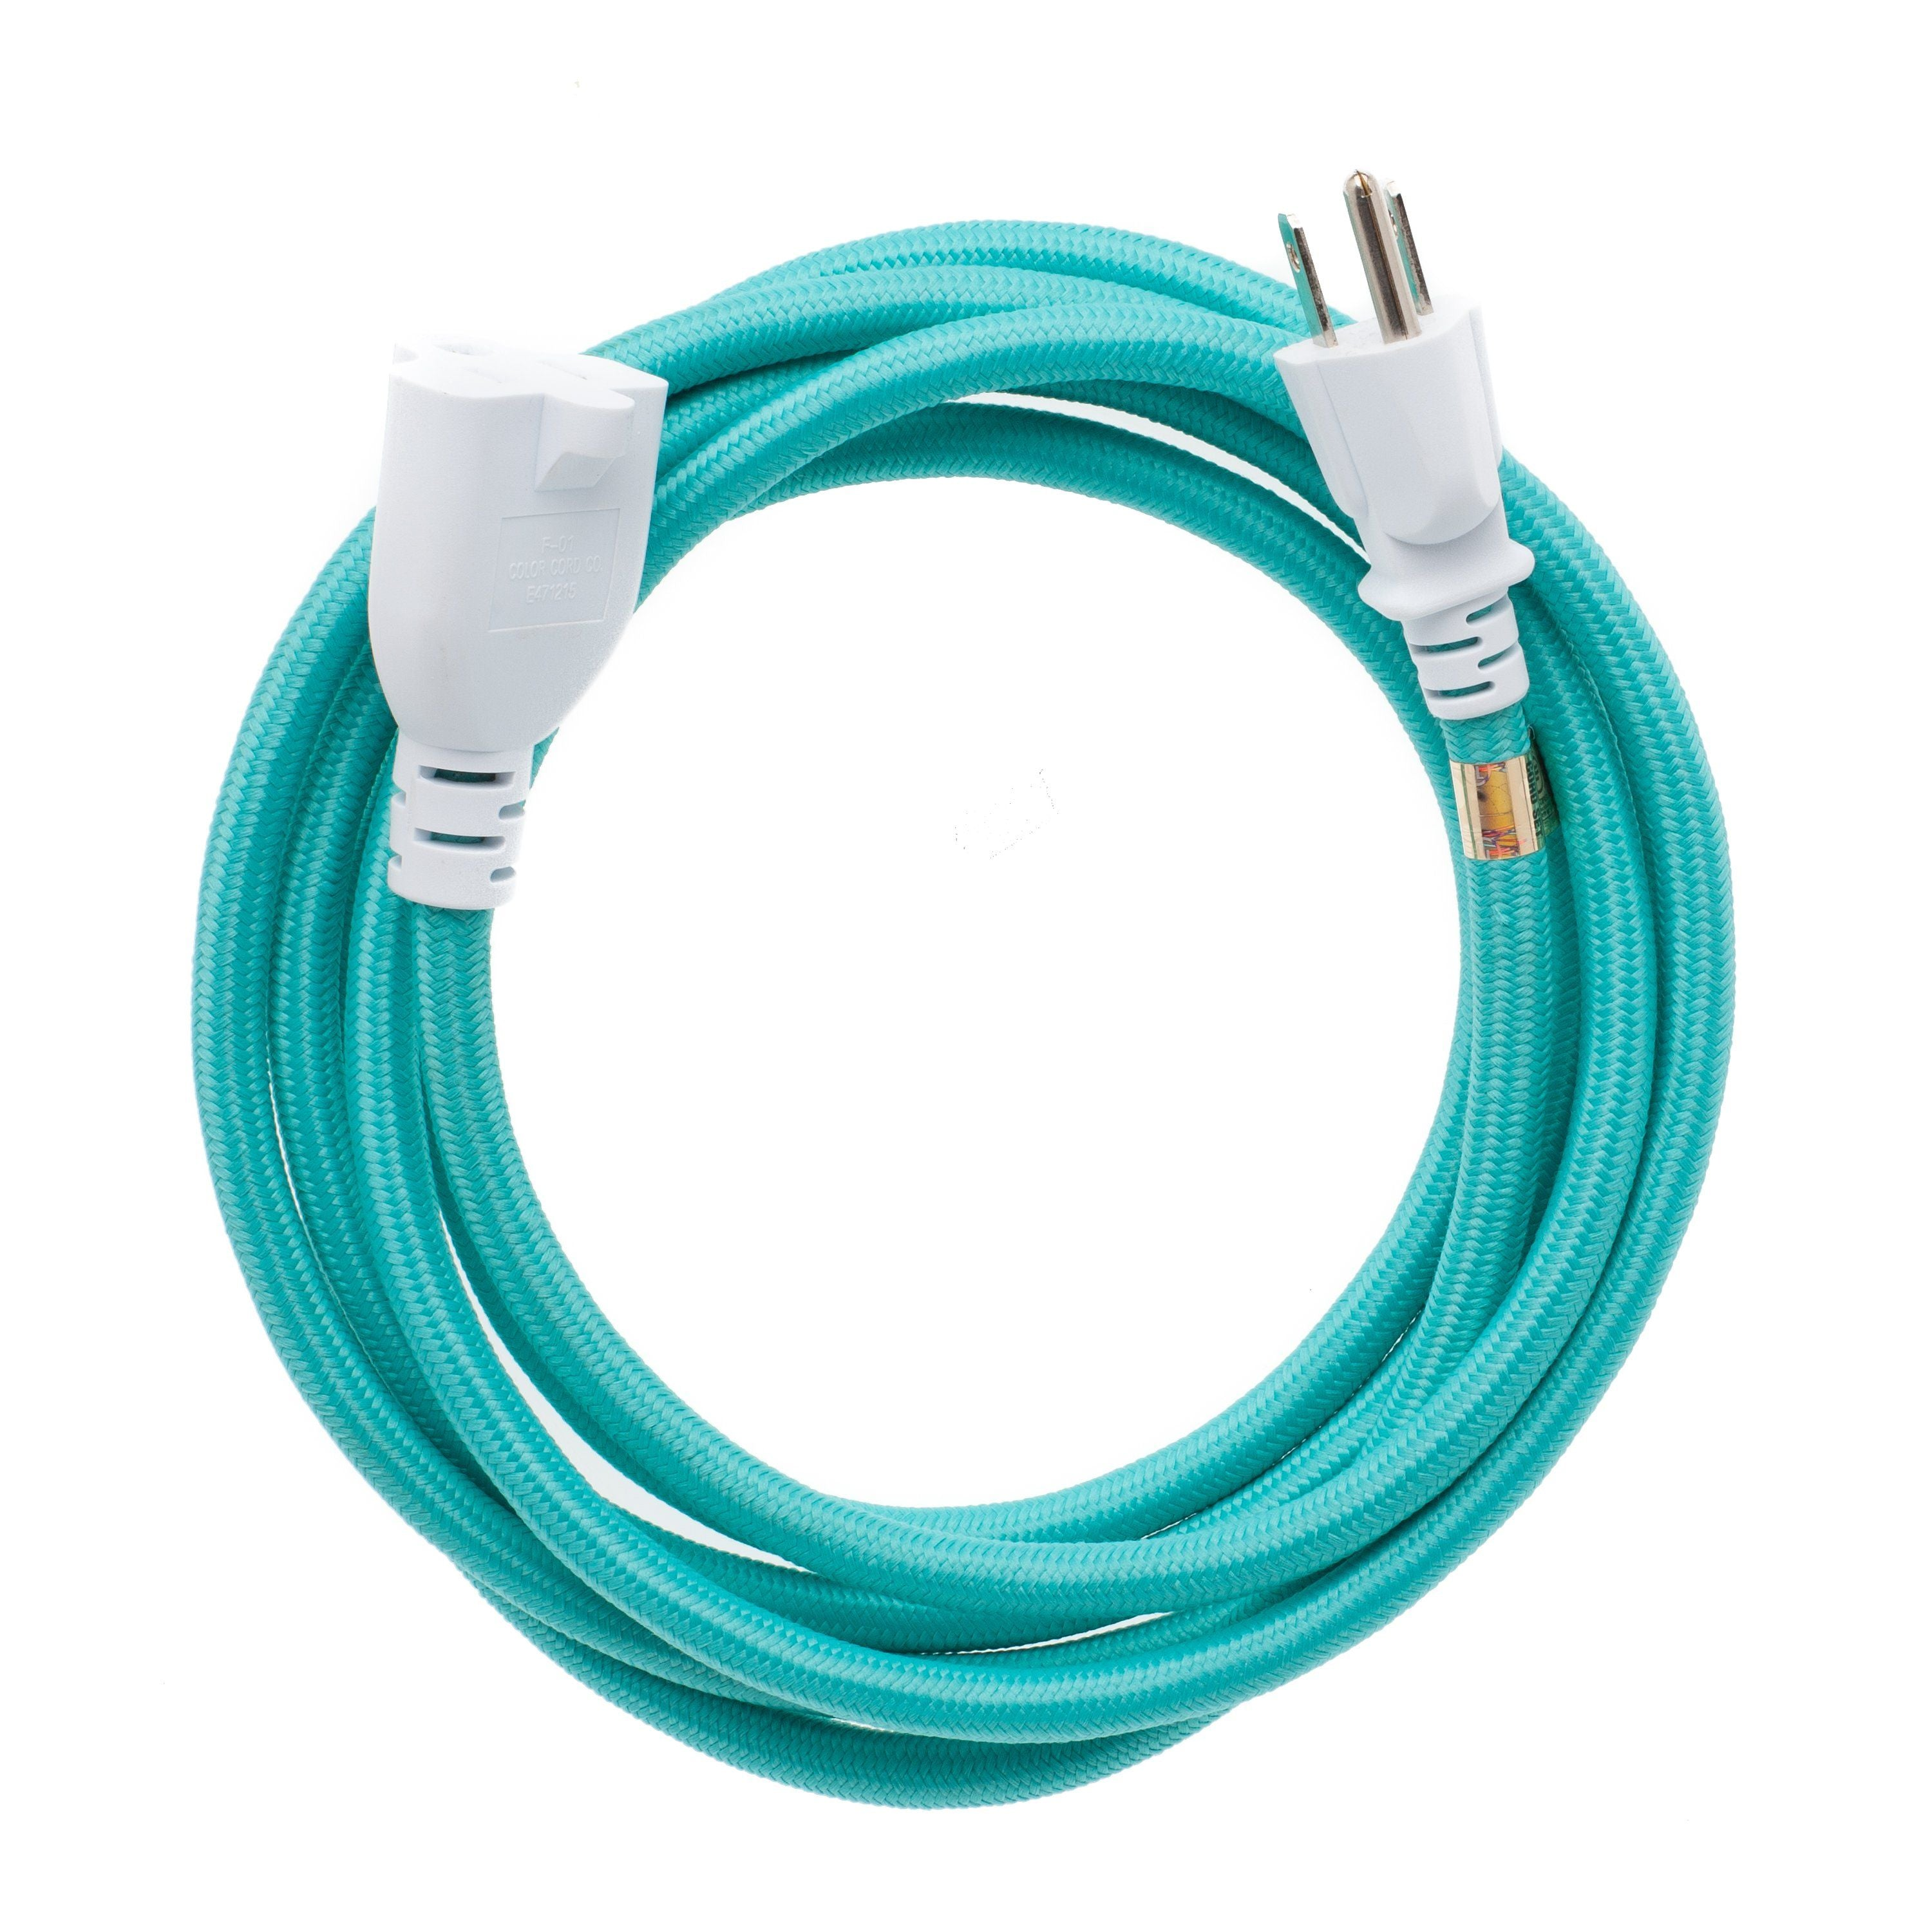 Cloth Extension Cord Color Company Wiring Shed